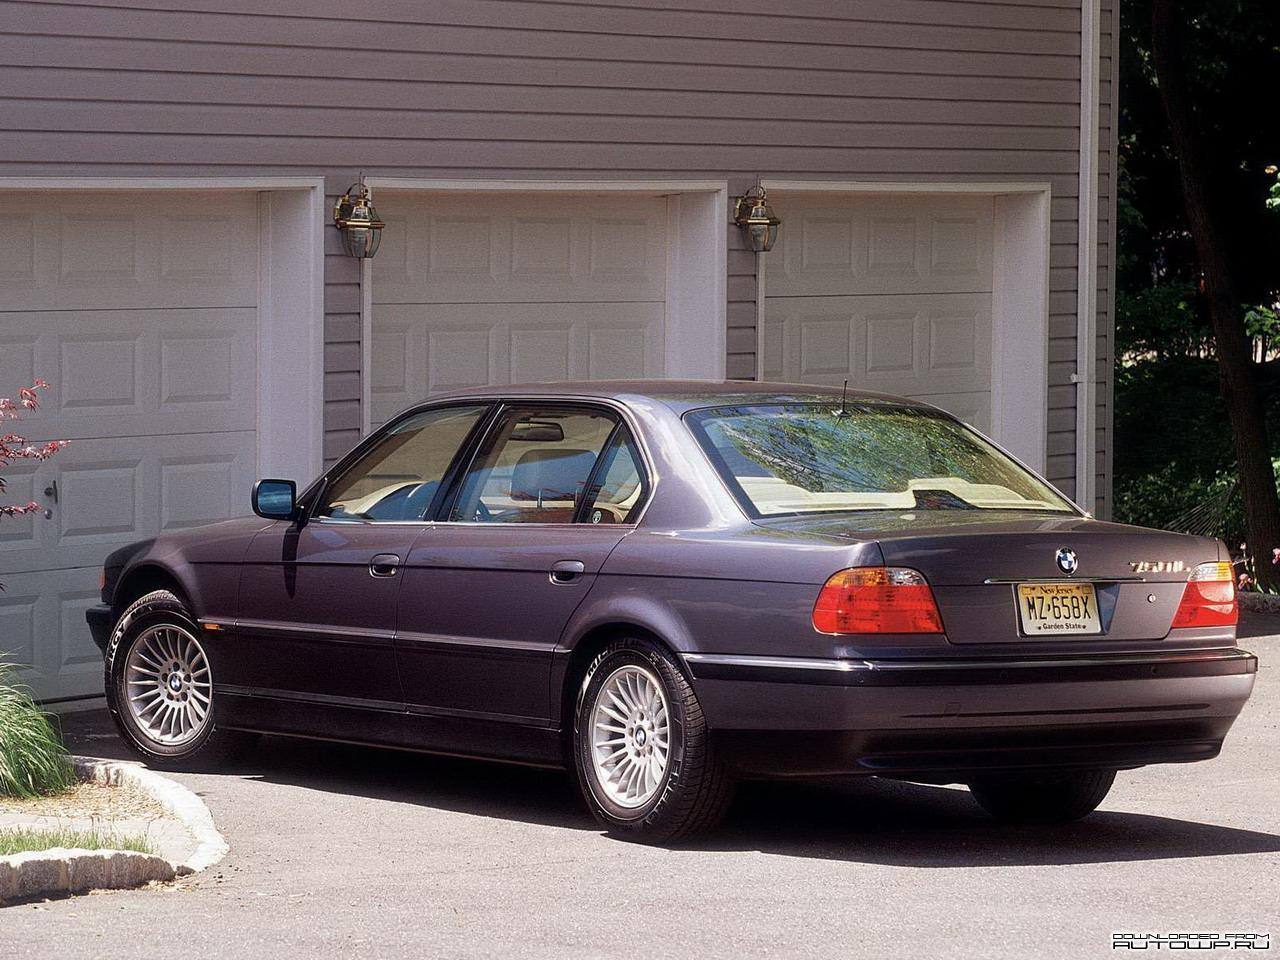 Bmw 7 Series E38 Photos Photogallery With 51 Pics